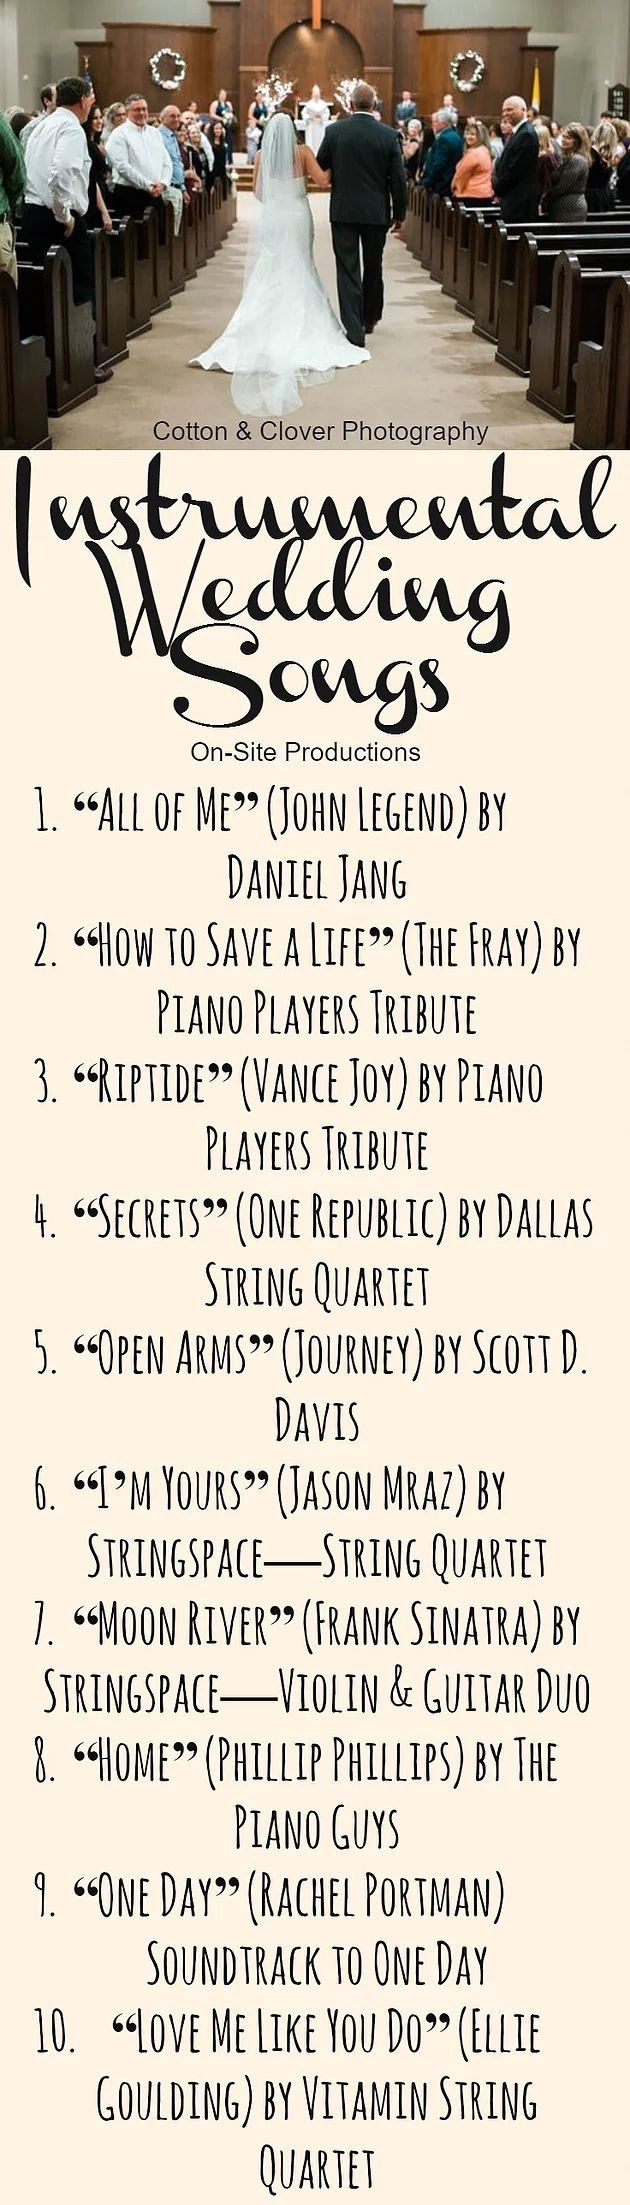 Wedding Songs 2020 100 of the Best To Play At Reception